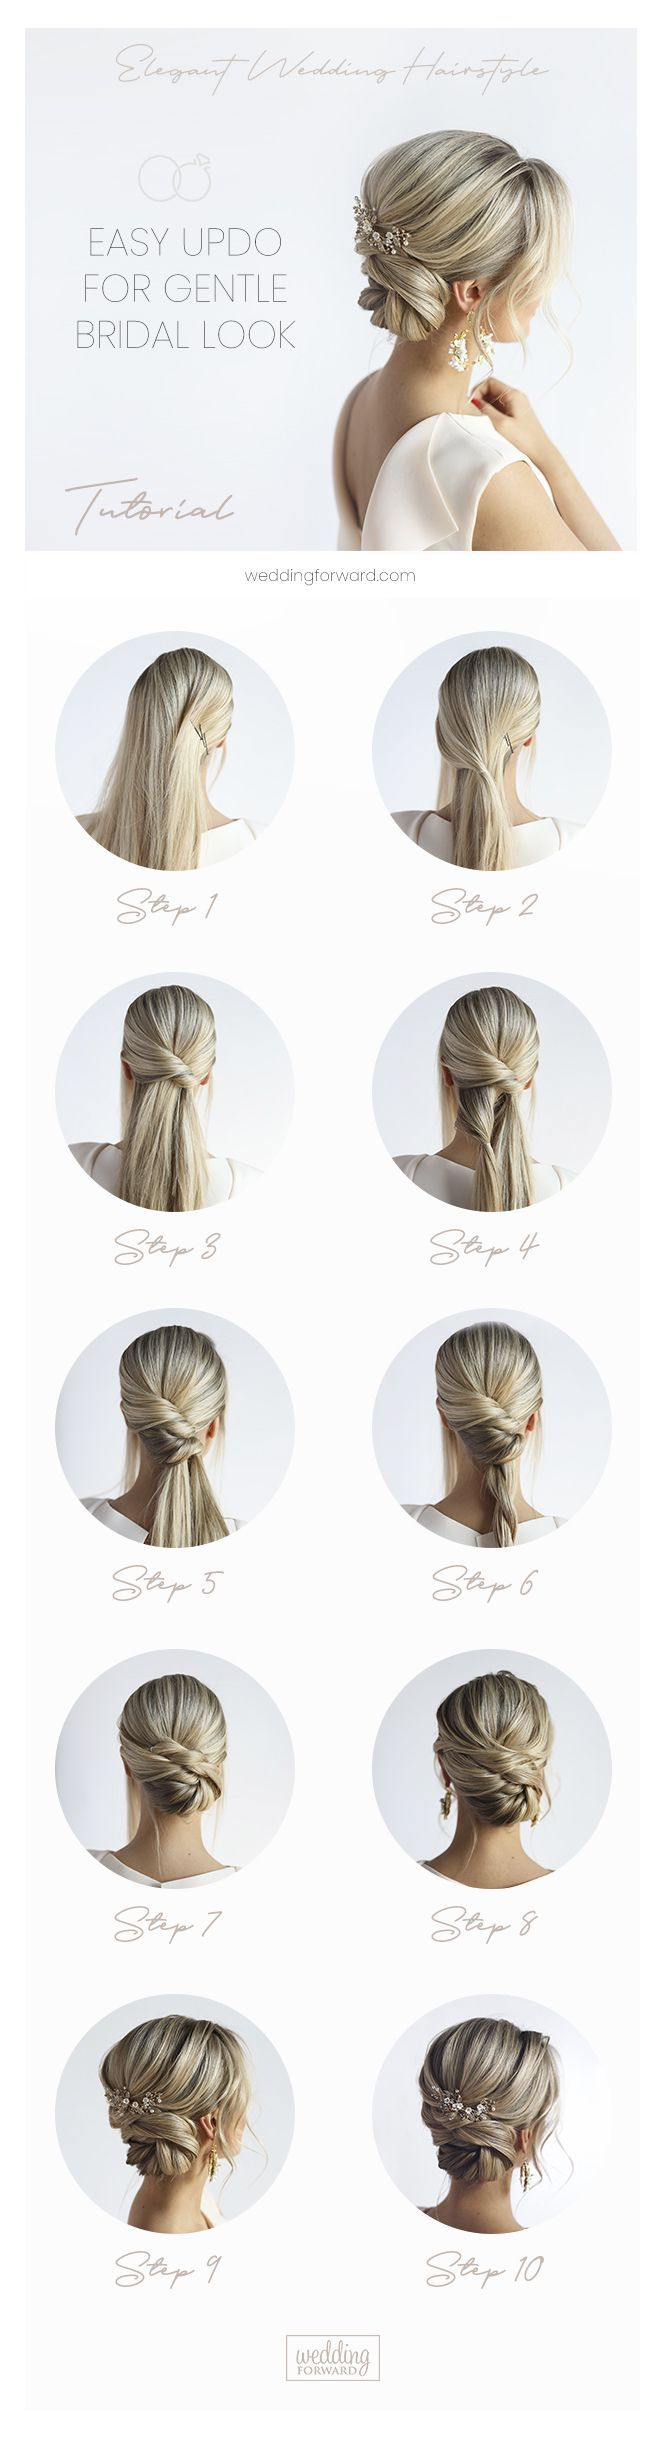 30 Elegant Wedding Hairstyles For Gentle Brides